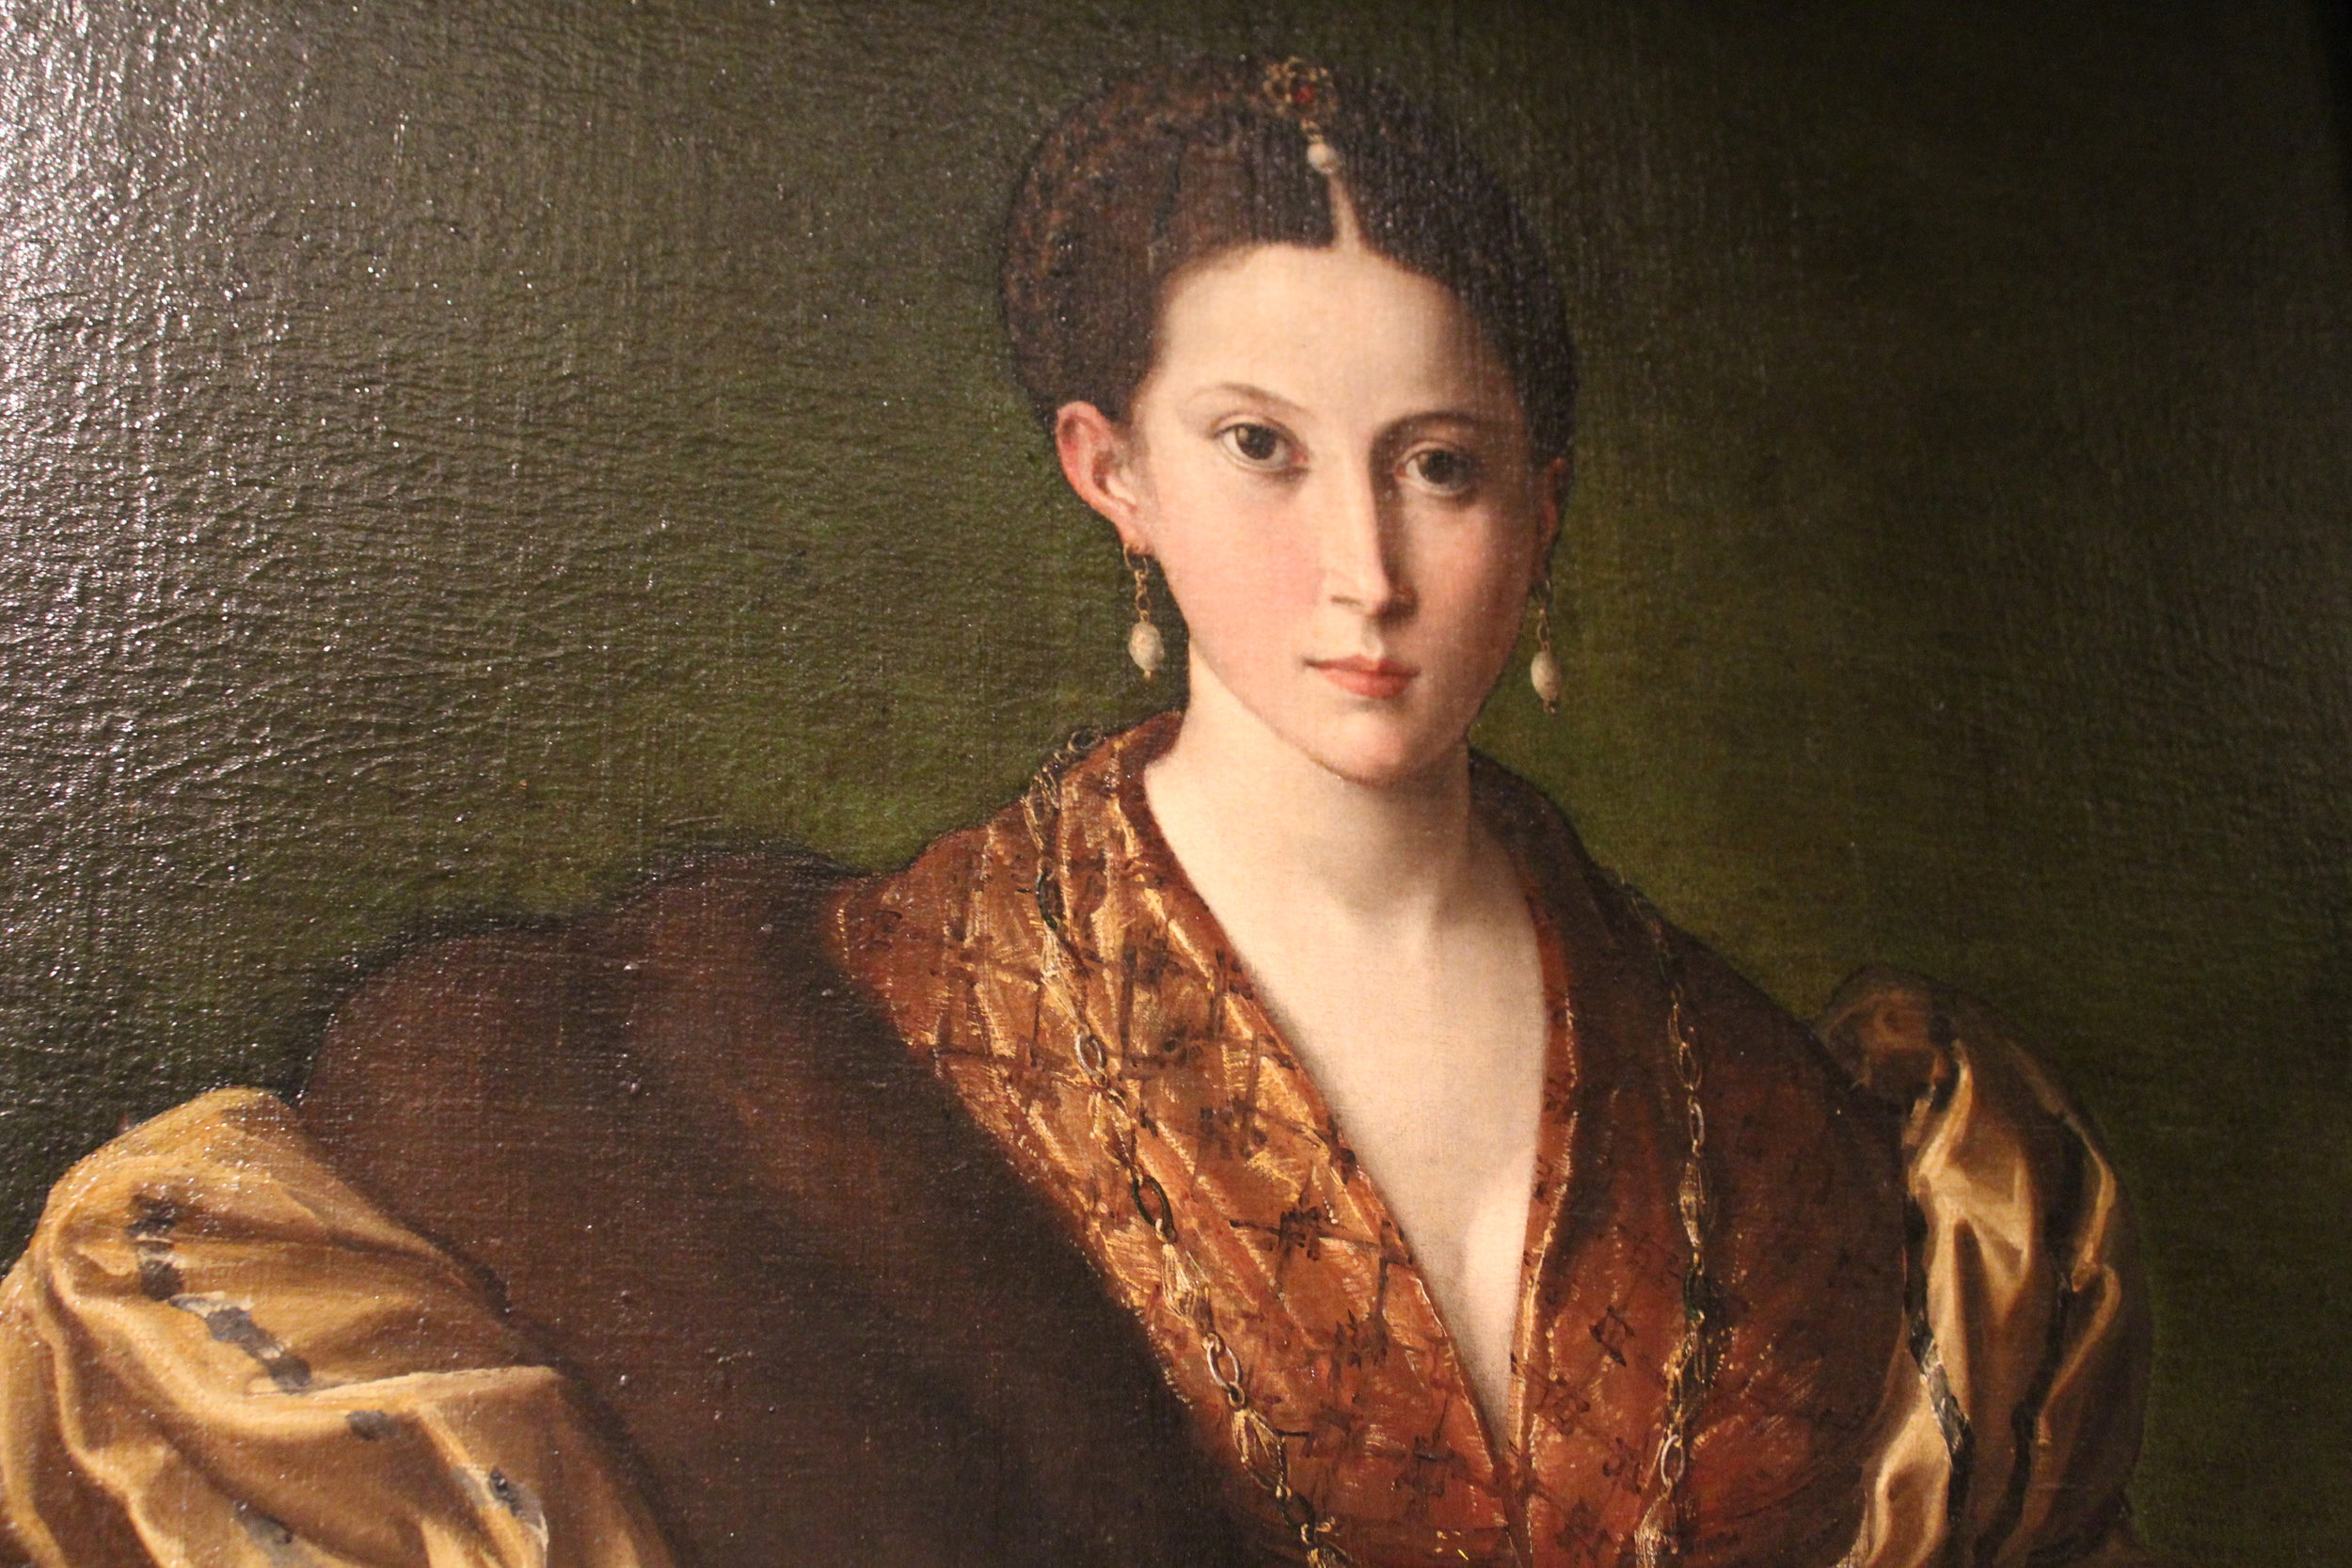 """Parmigianino's """"Antea"""" is a highlight of a visit to the Museo di Capodimonte in Naples"""